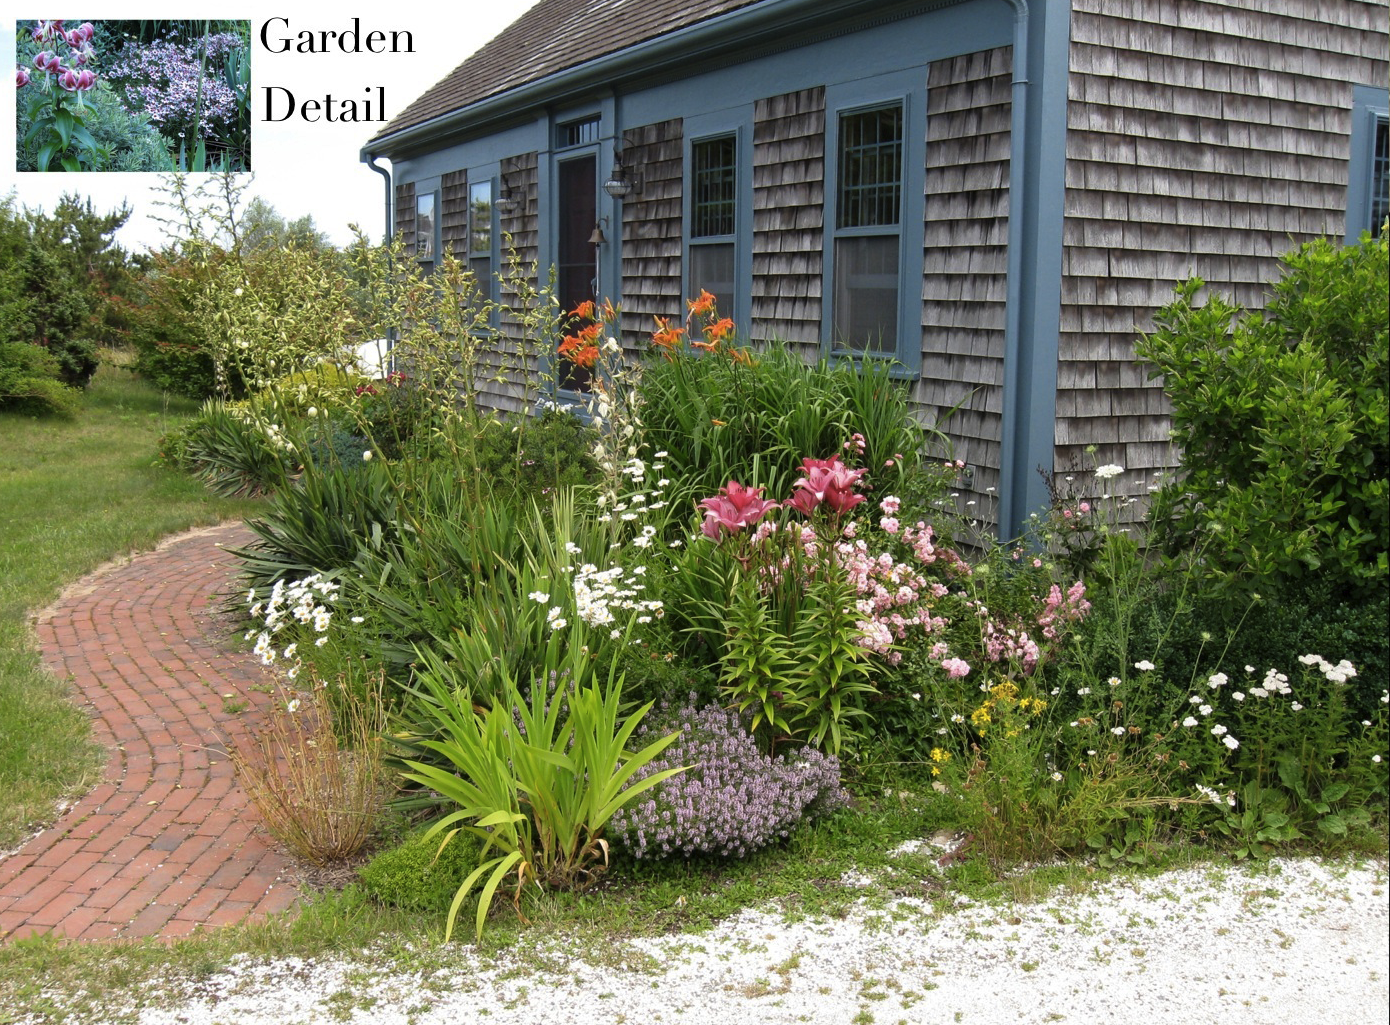 cottage garden design style rustic house with wood singles are combined with brick curvilinear path massed garden bed with lots of flower varieties